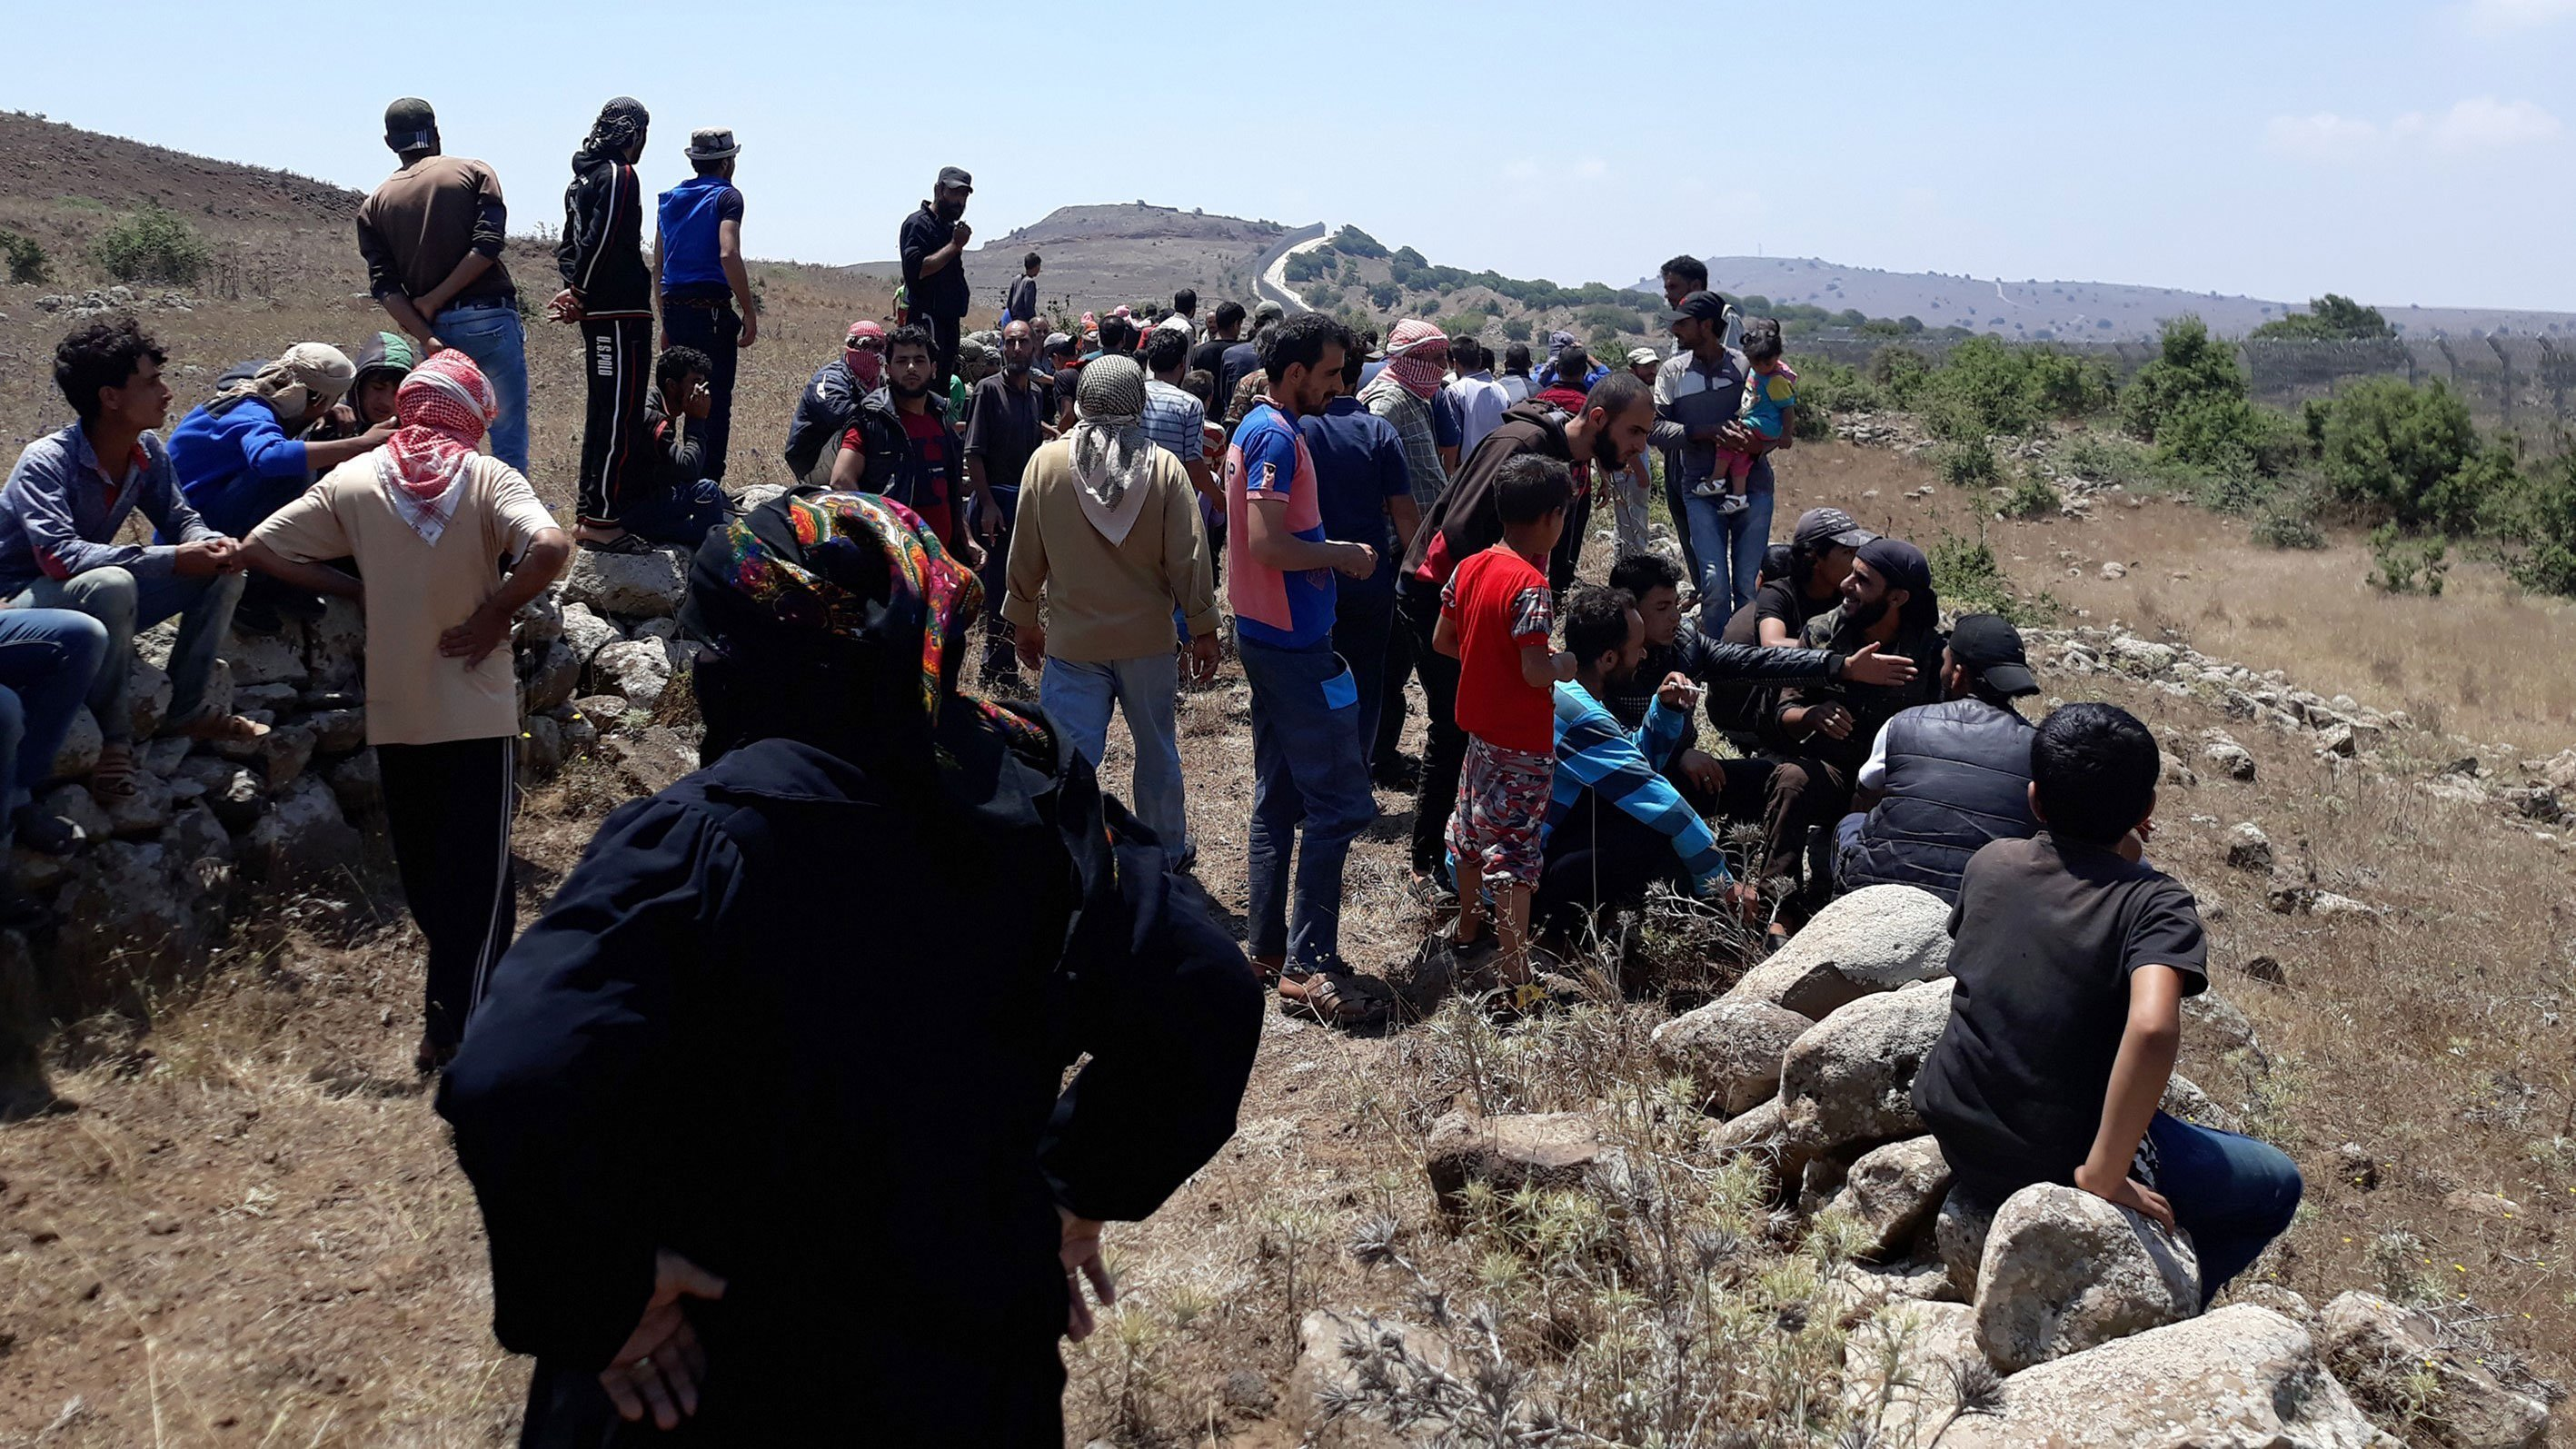 Syrians who approached Israeli Golan frontier walk back toward refugee encampments ZlotoNews